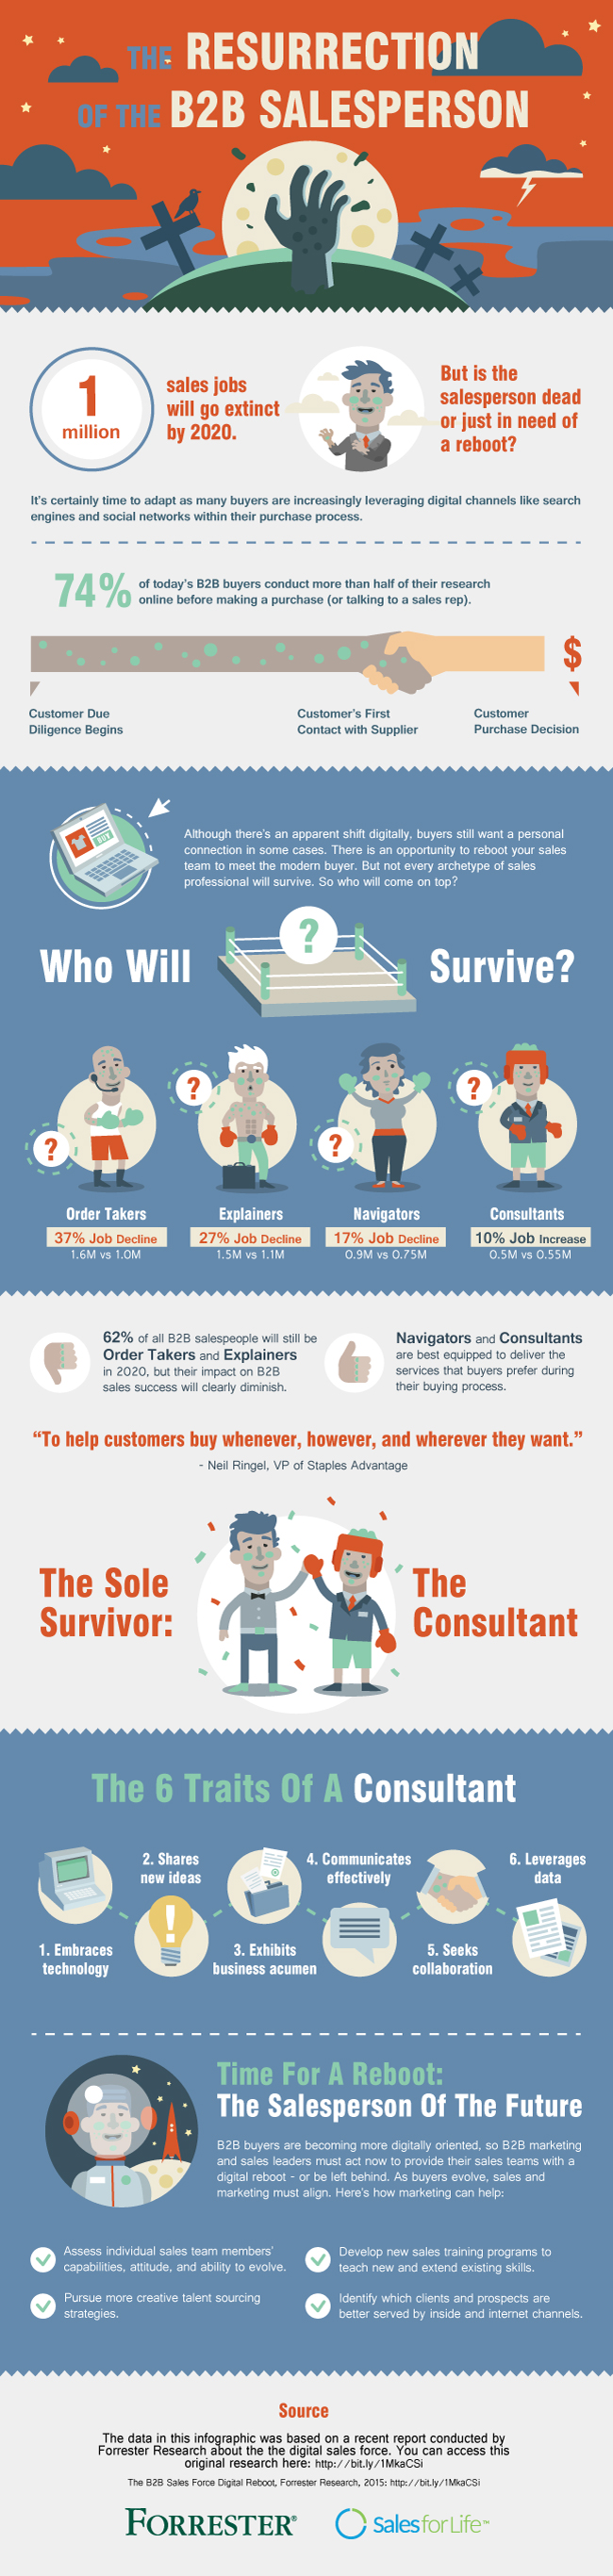 Infographic: The resurrection of the B2B salesman